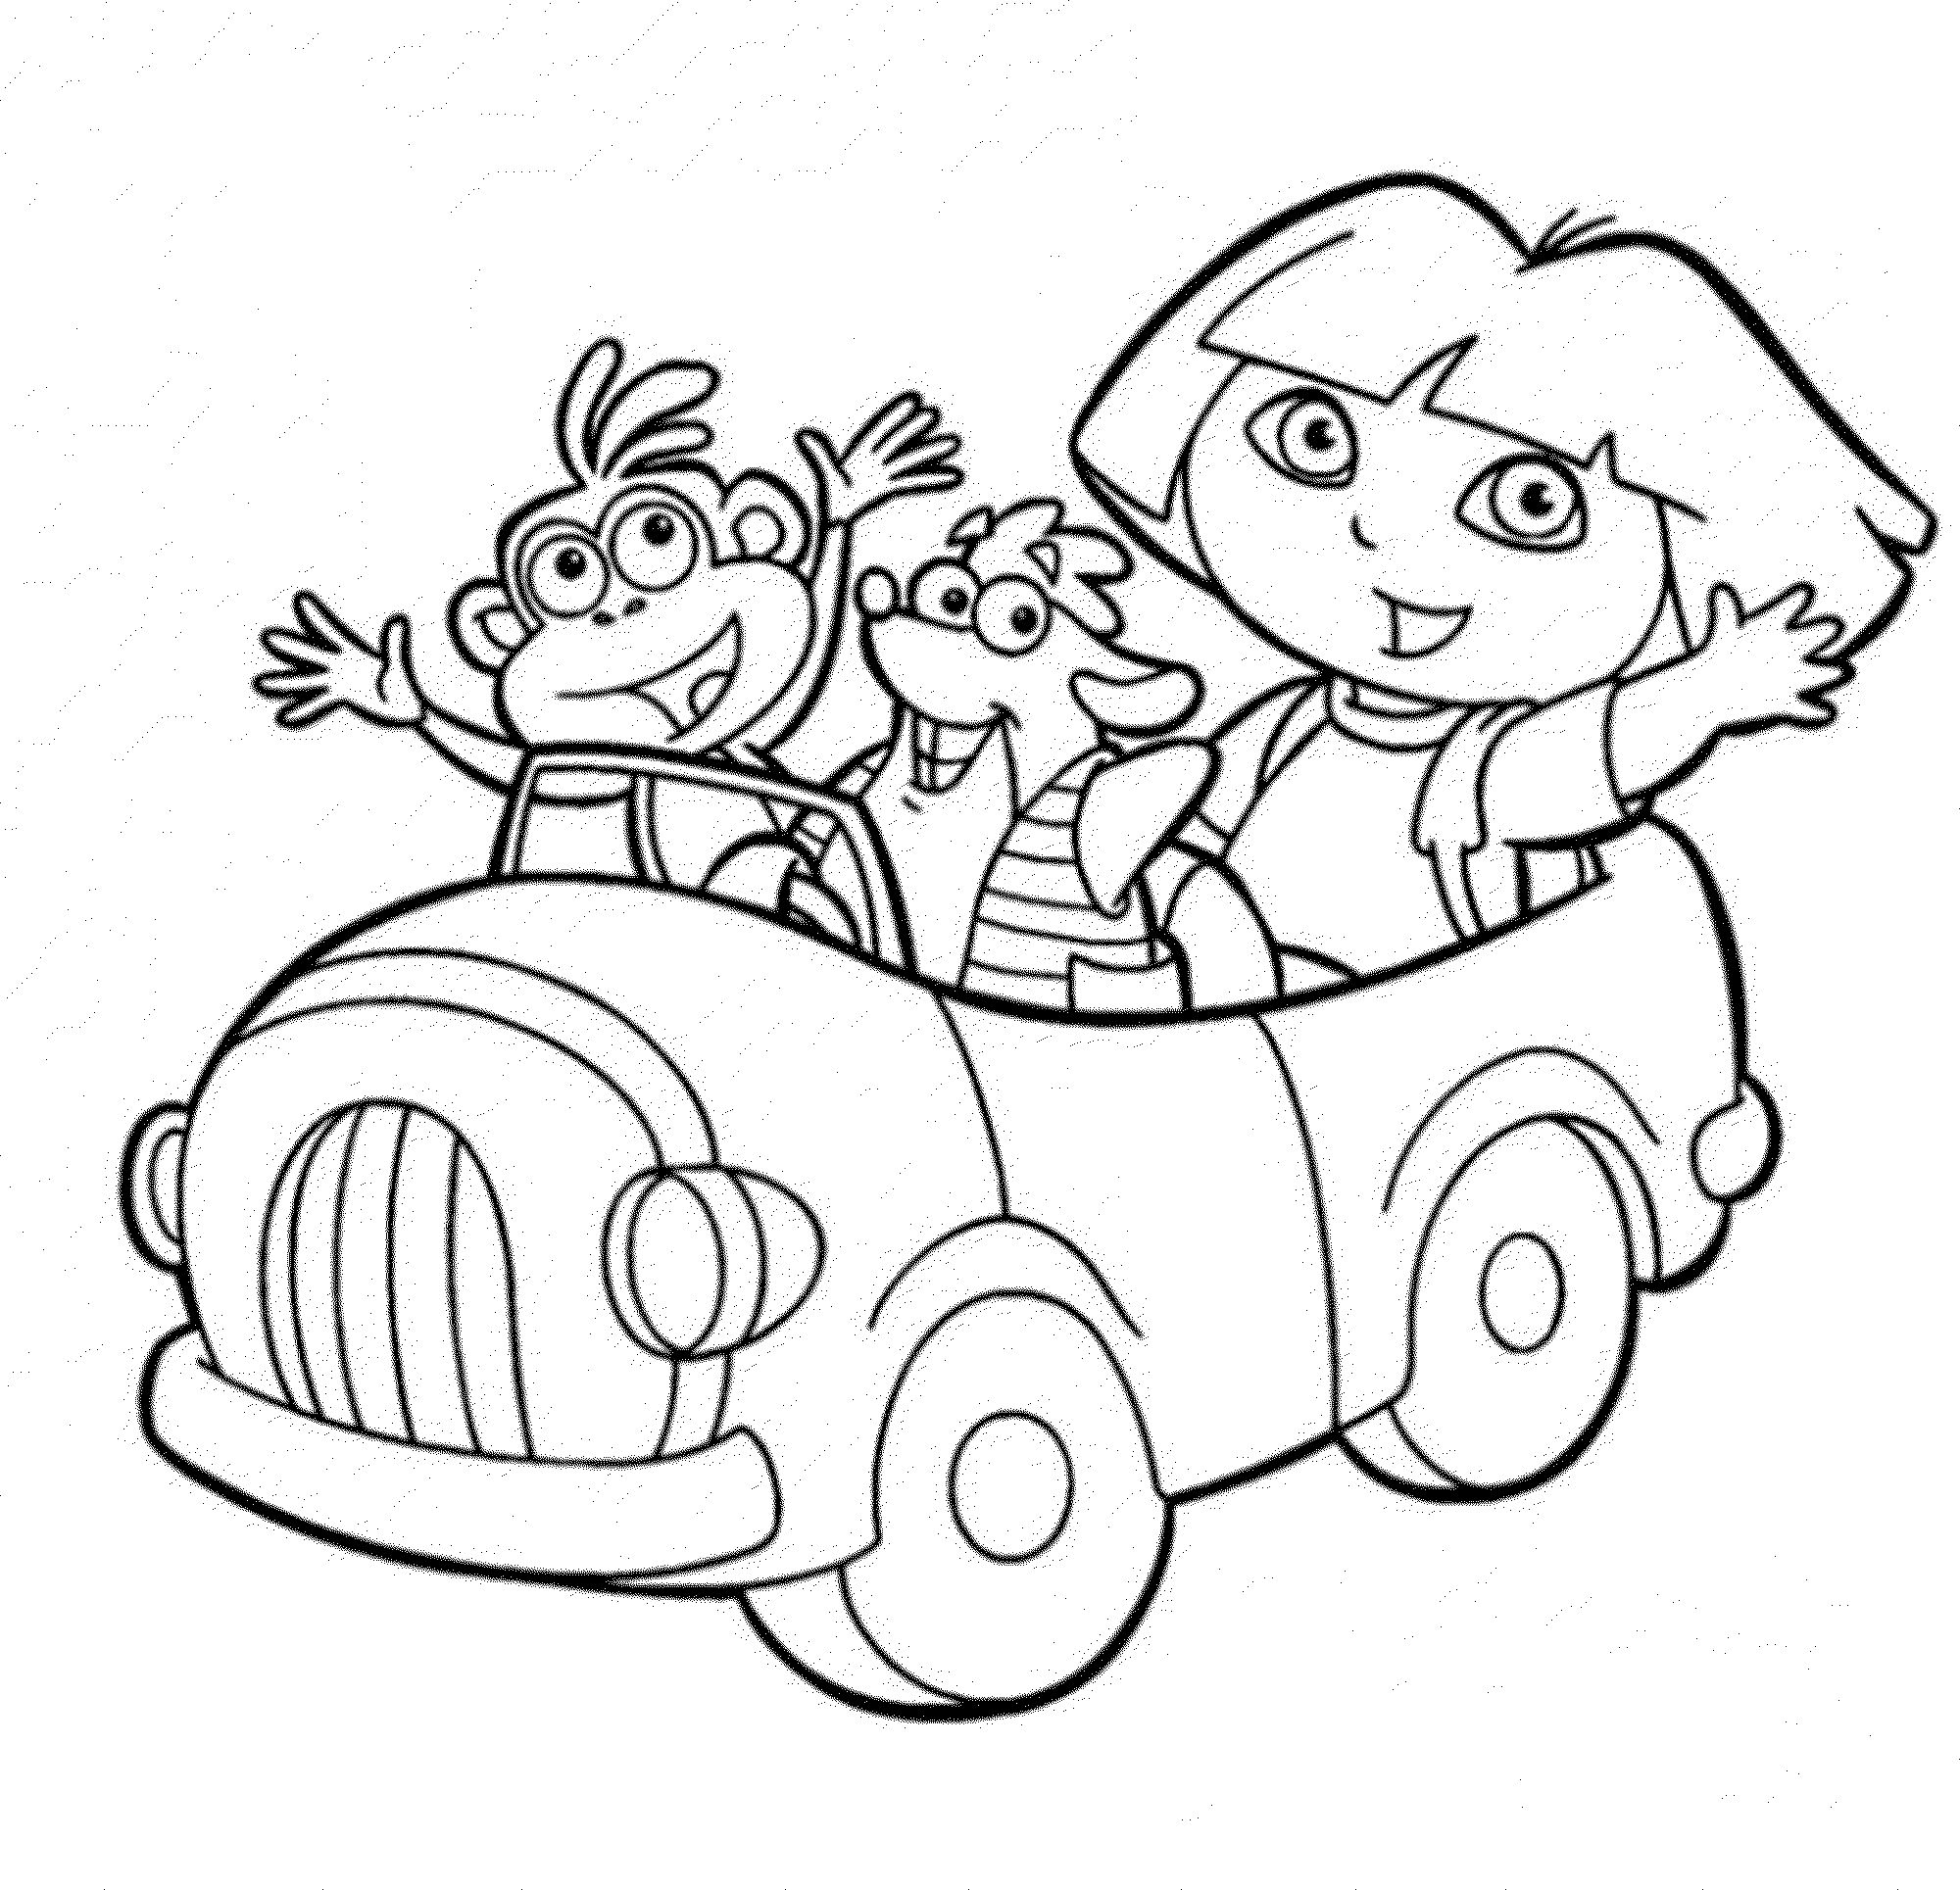 dora the explorer printable coloring pages dora the explorer printable coloring pages hubpages the dora coloring explorer printable pages